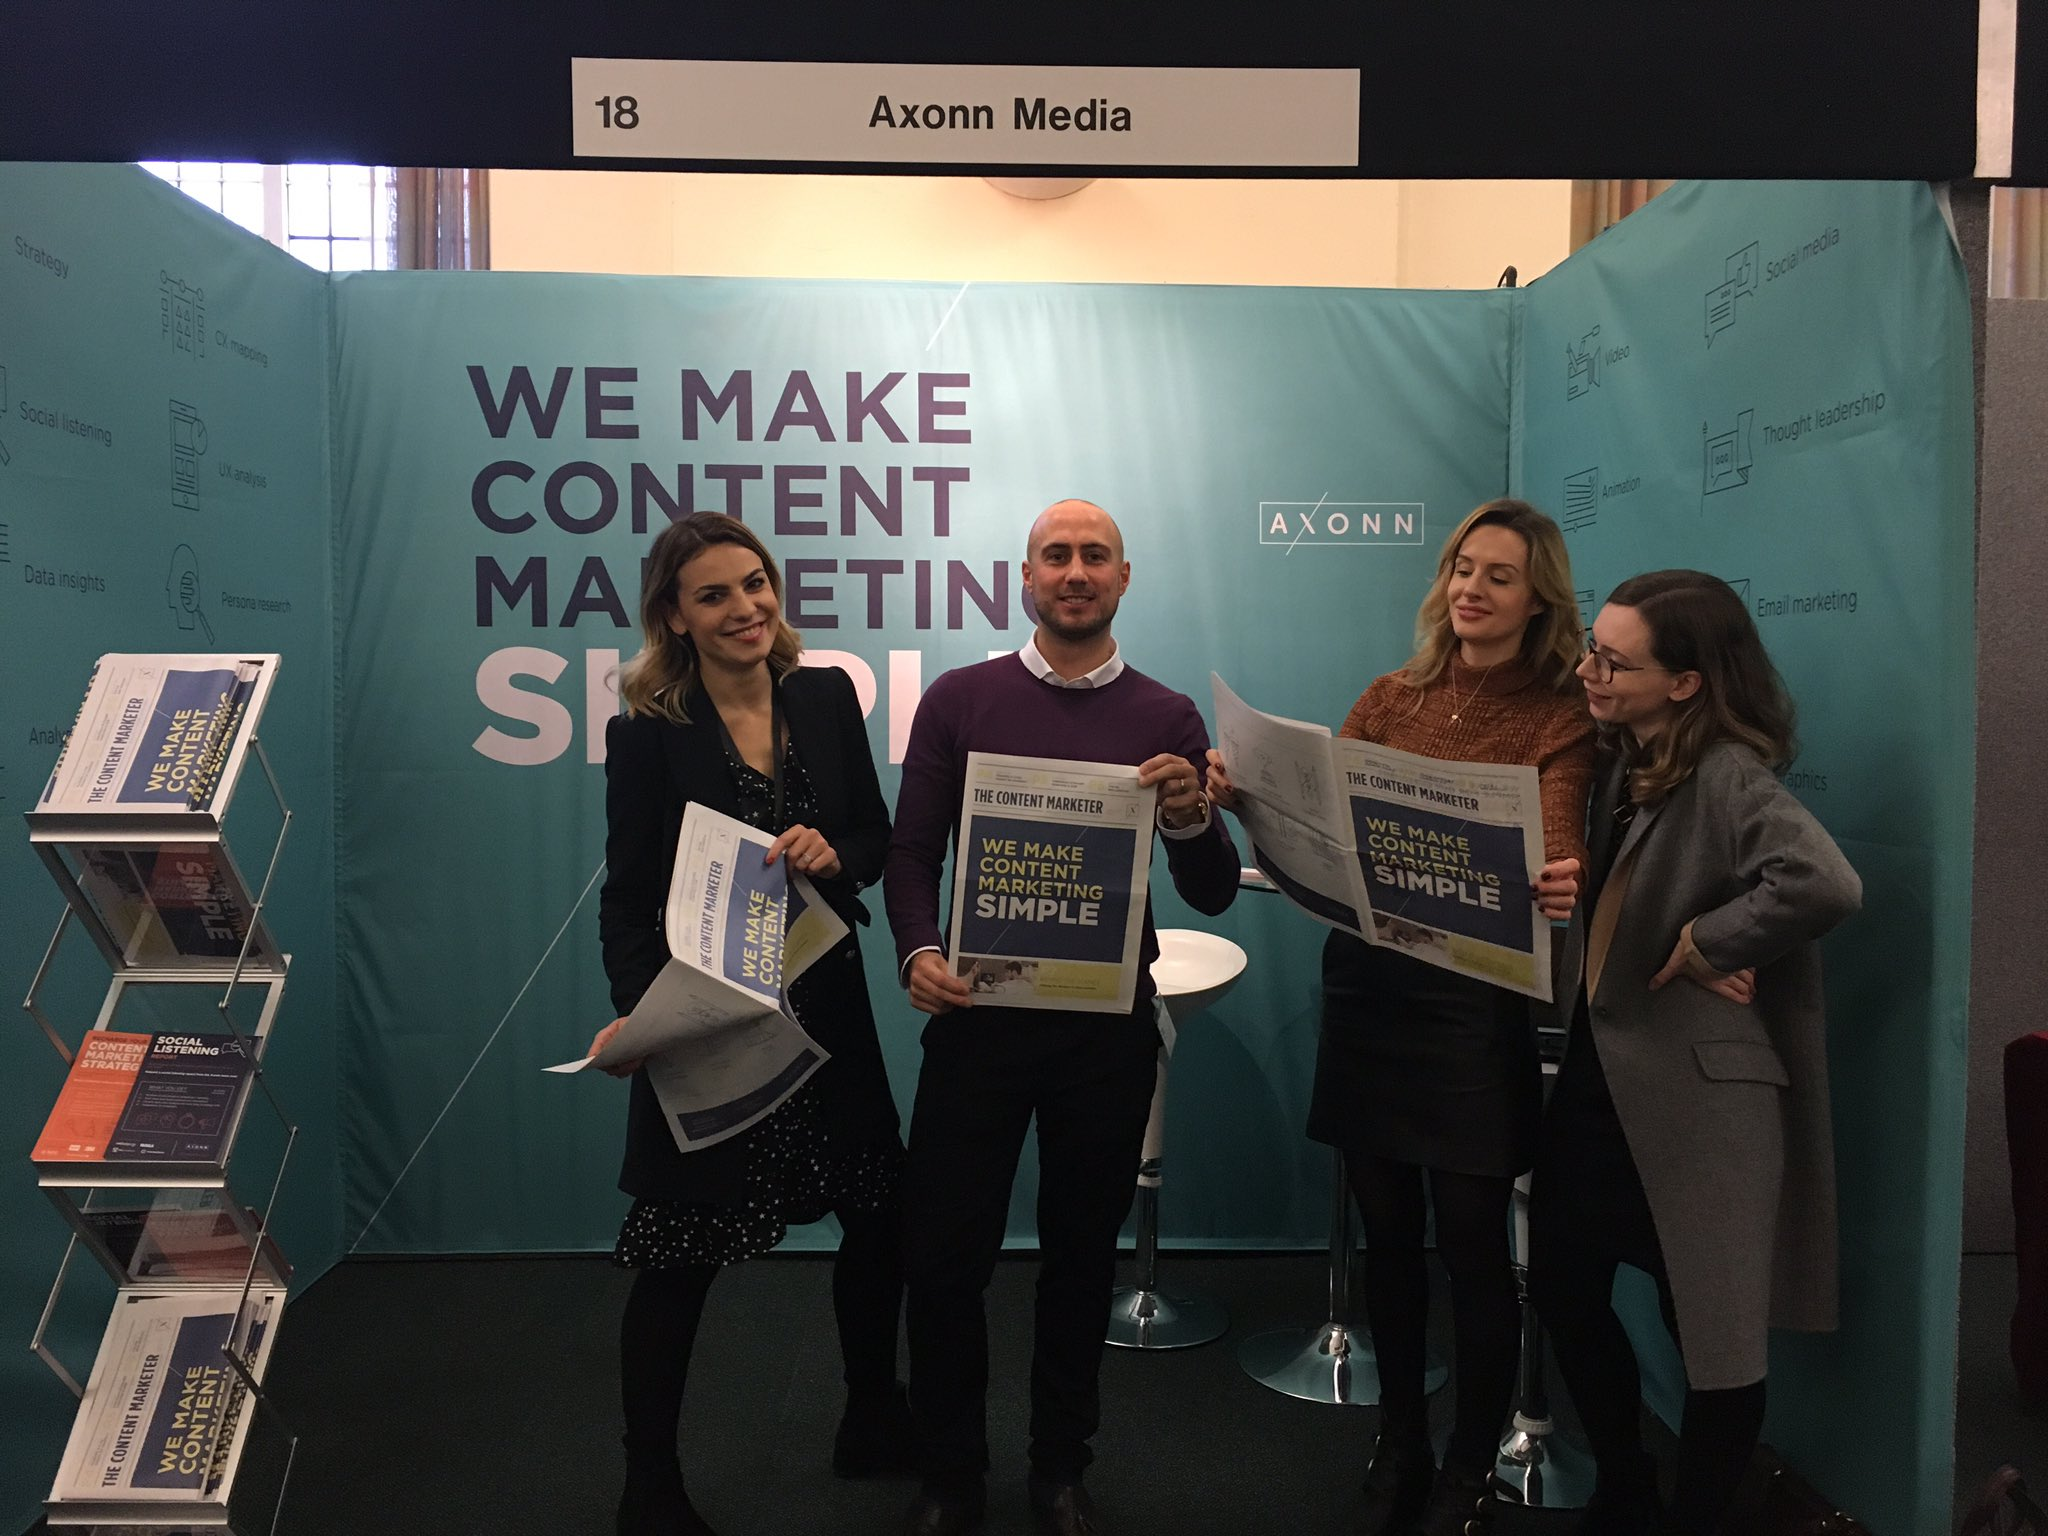 Stand 18 is where it's at! Come say hi to the @AxonnMedia team! #OiConf https://t.co/O981mL8pzV